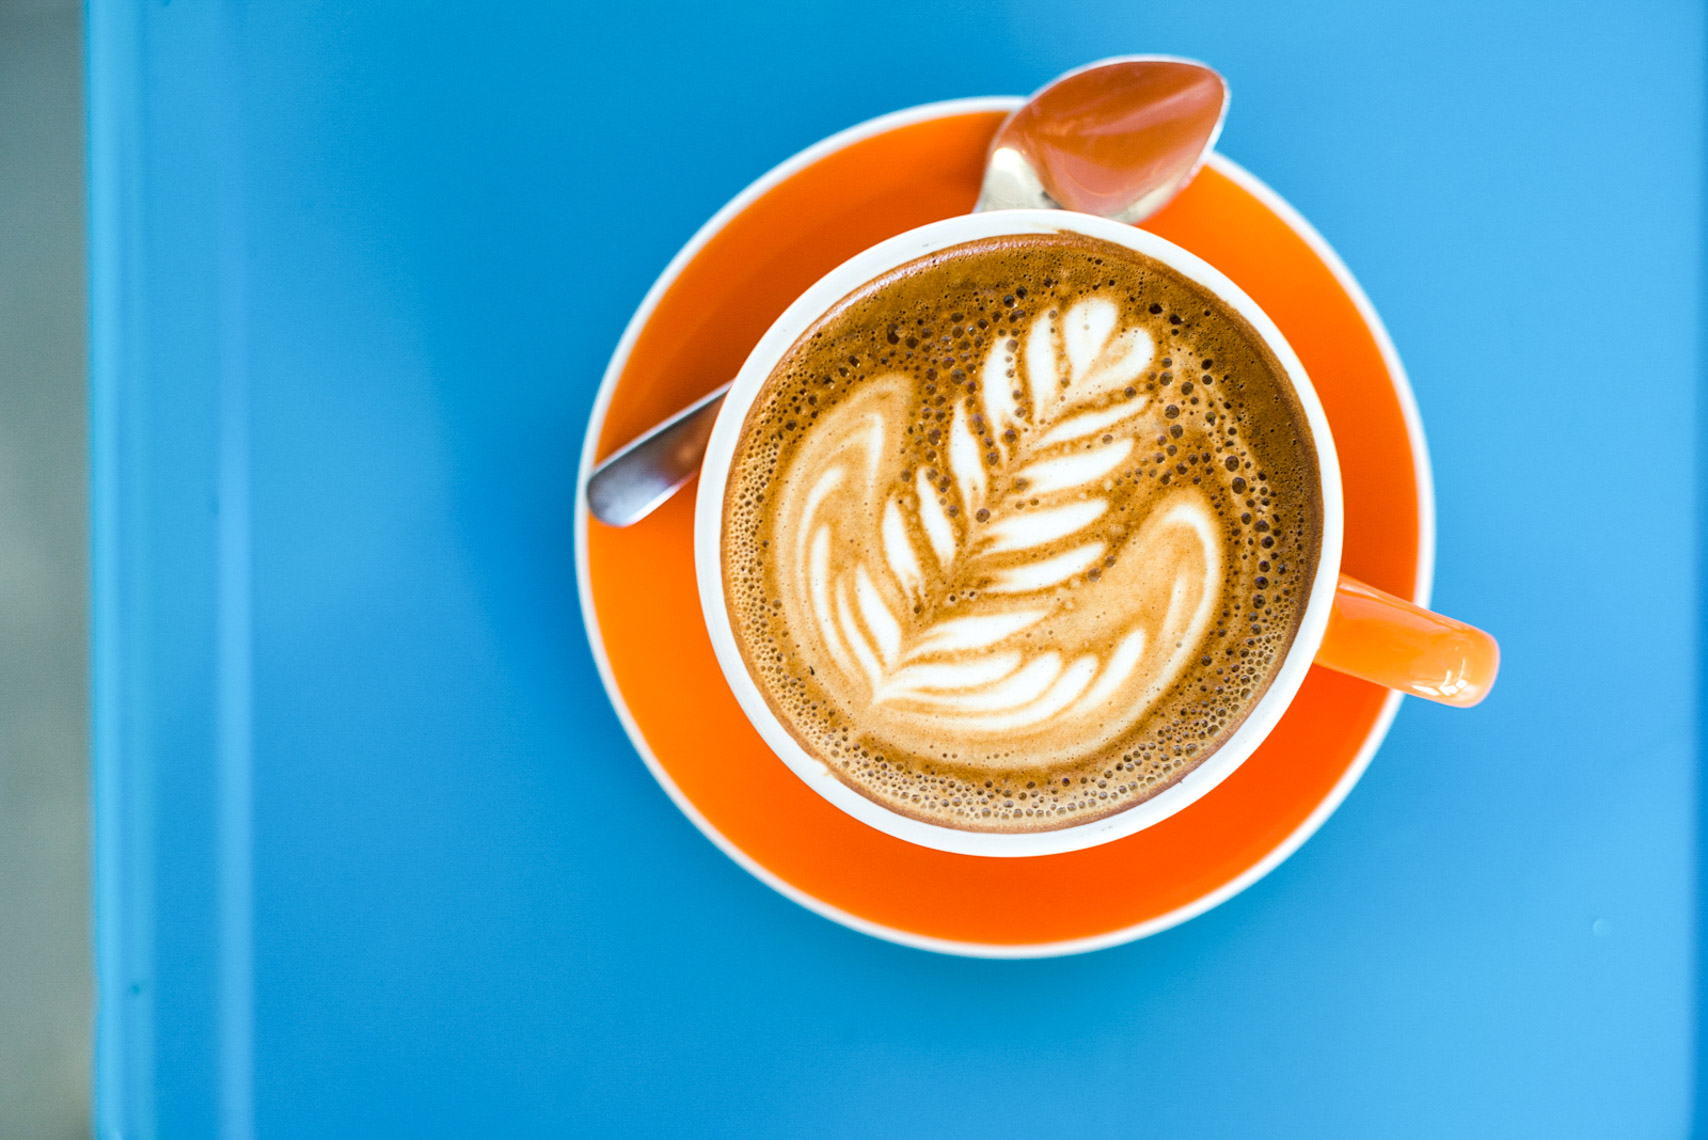 Latte in Orange Cup on Blue Background at Prodigy Coffee in Denver Colorado